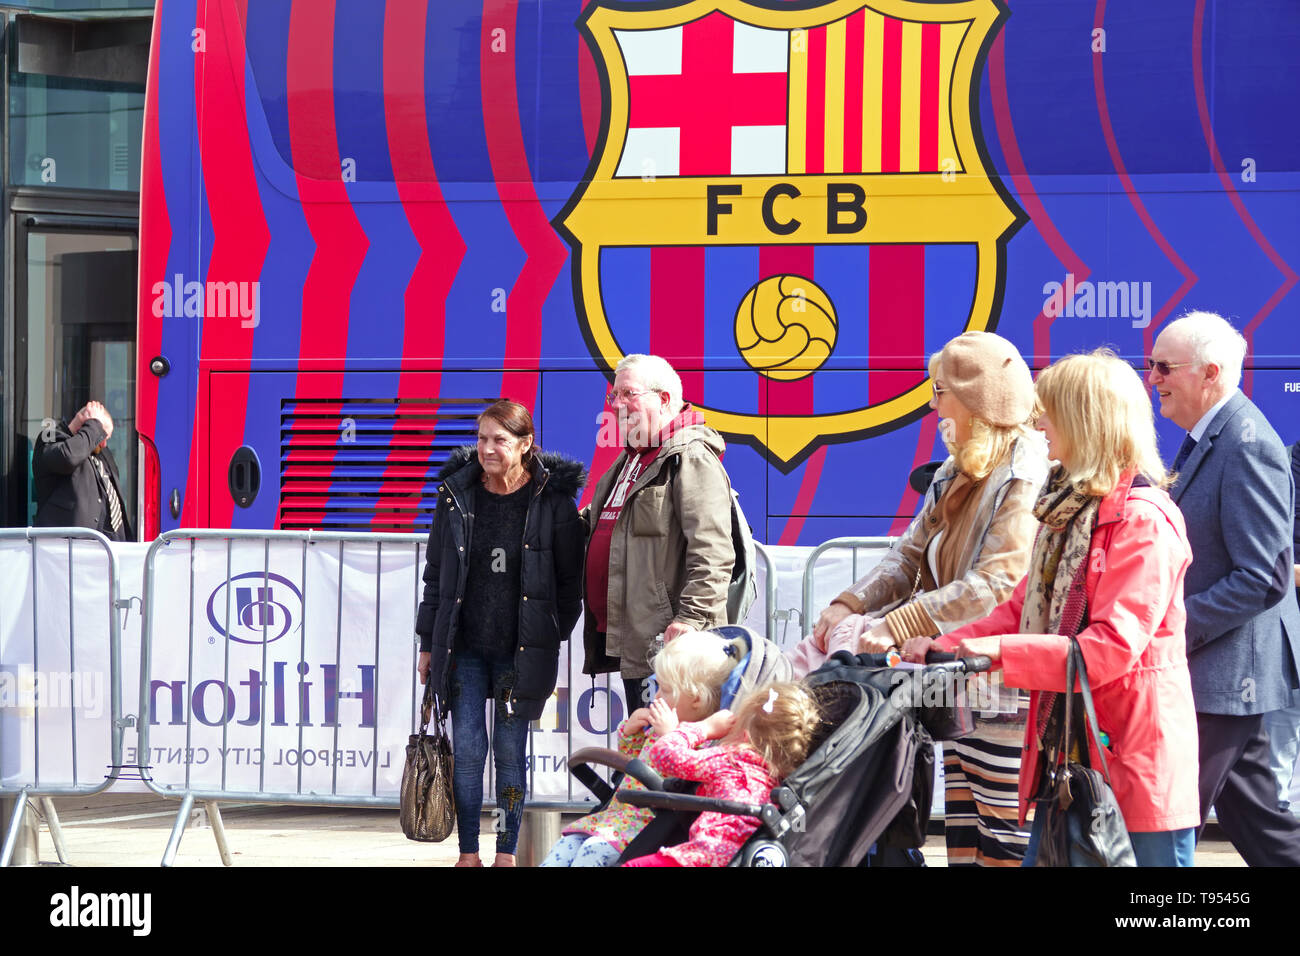 People pose for photographs in front of the FC Barcelona team coach in front of the Hilton Hotel Liverpool UK - Stock Image